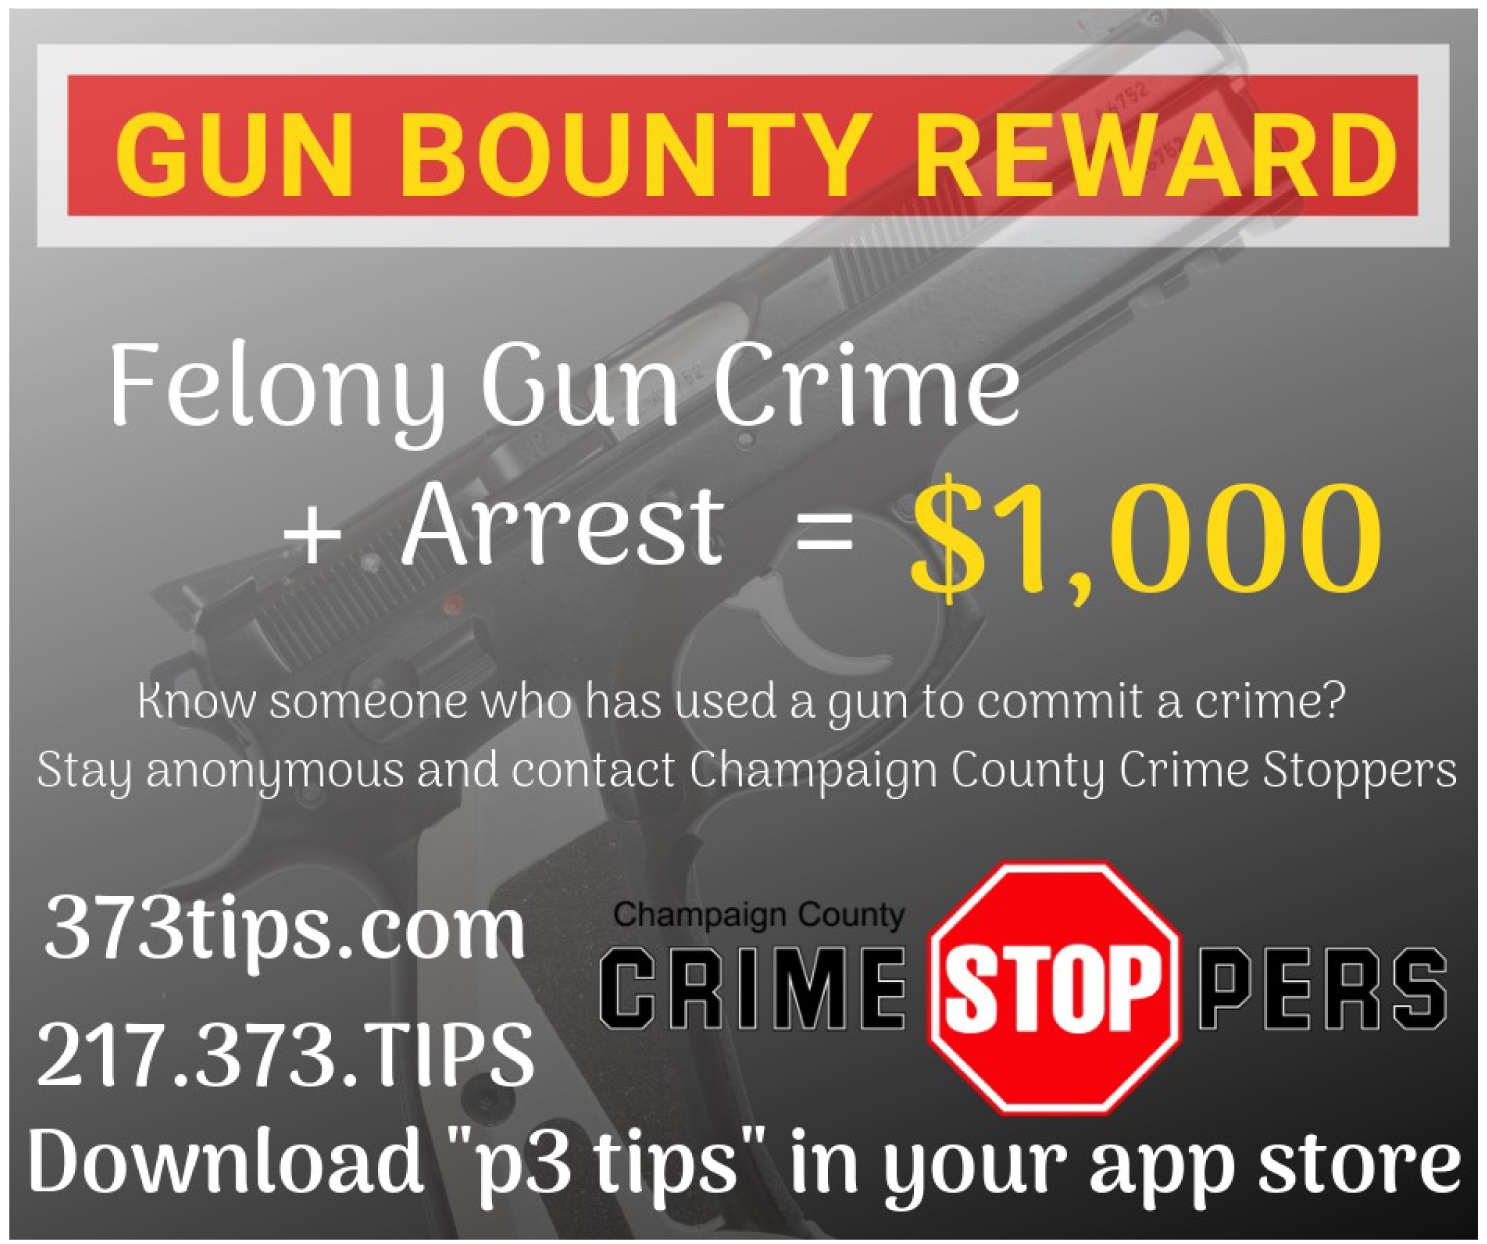 Champaign County Crime Stoppers